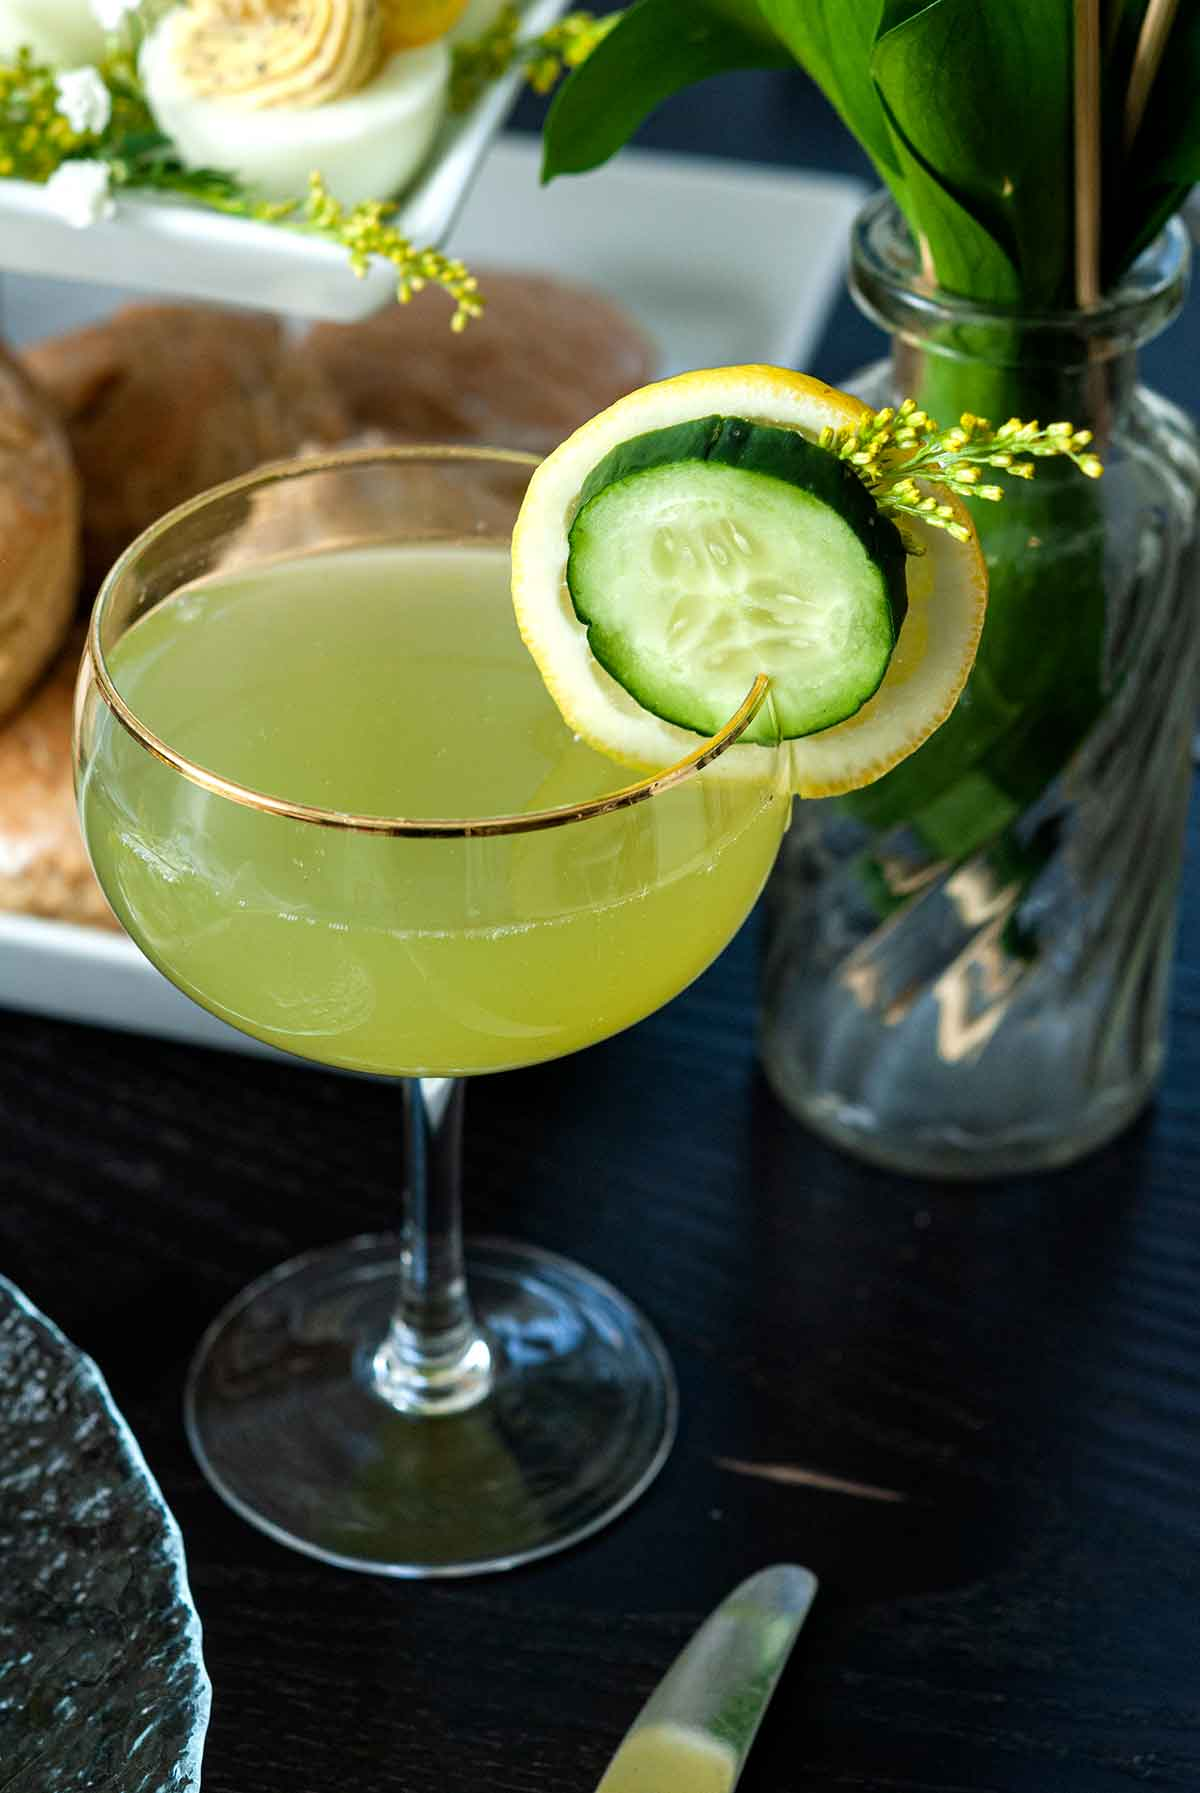 A cocktail garnished with cucumber and lemon on a table in front of a tier of sones and deviled eggs.